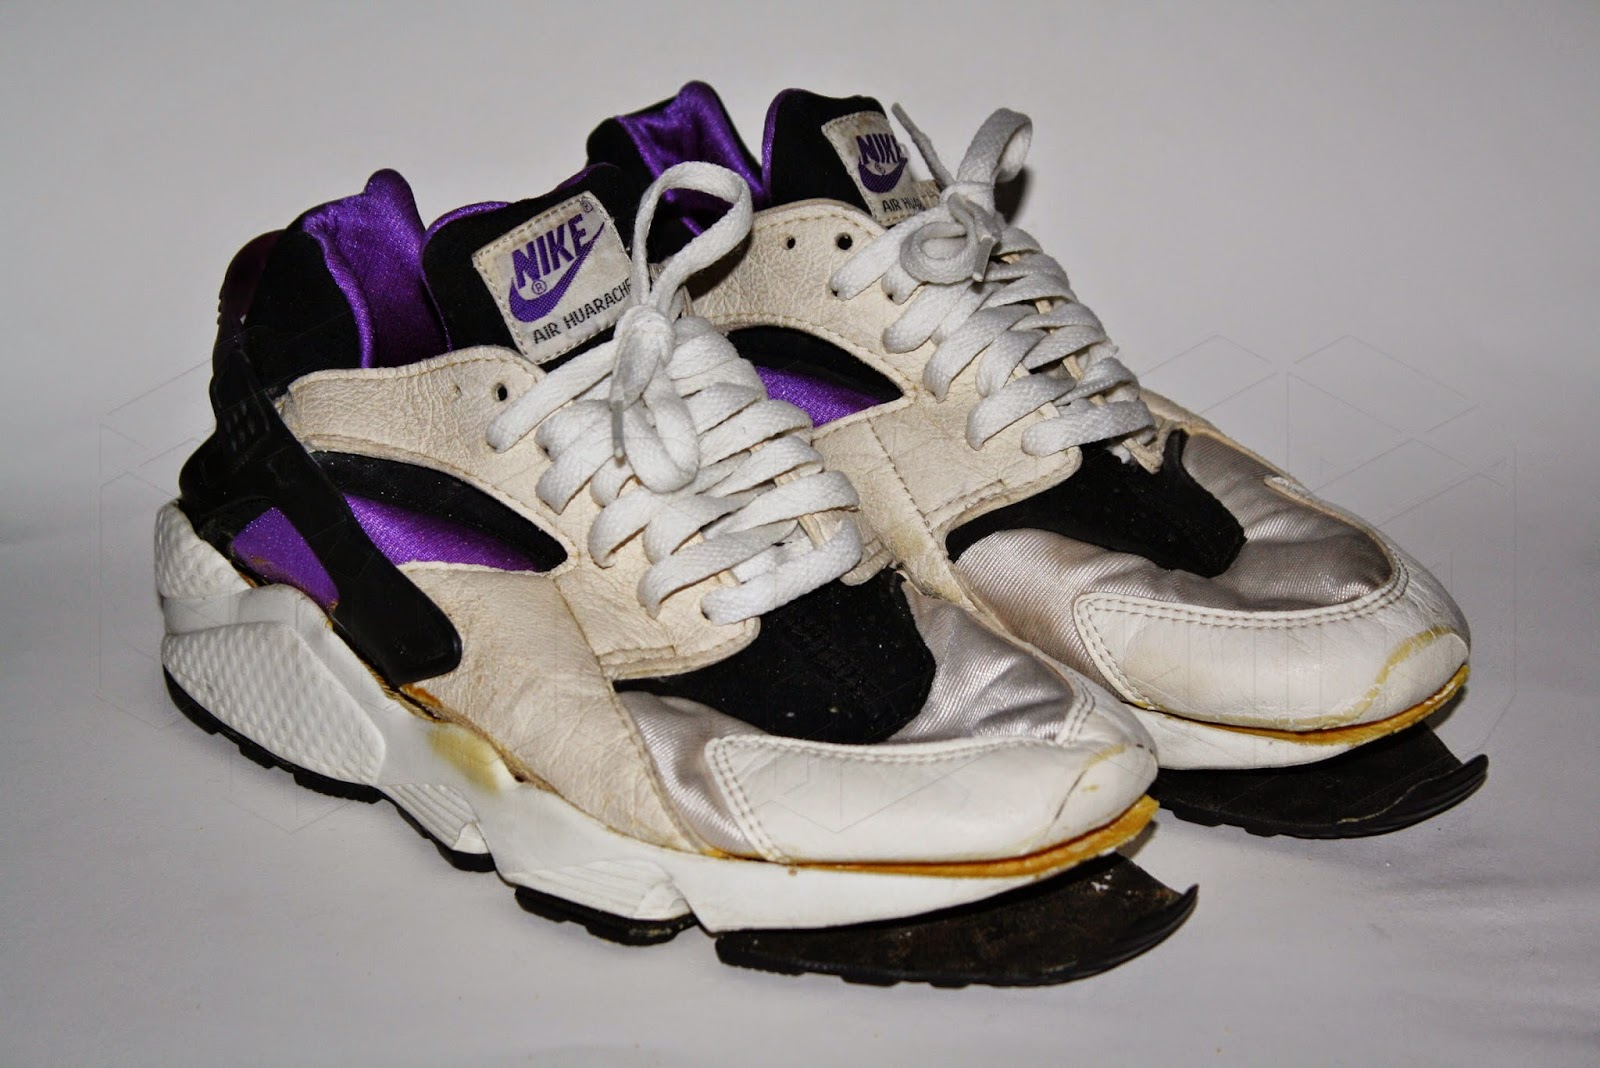 buy online 6c883 db059 Nueve Cincuenta: Nike Air Huarache Purple Punch 1991. Out ...